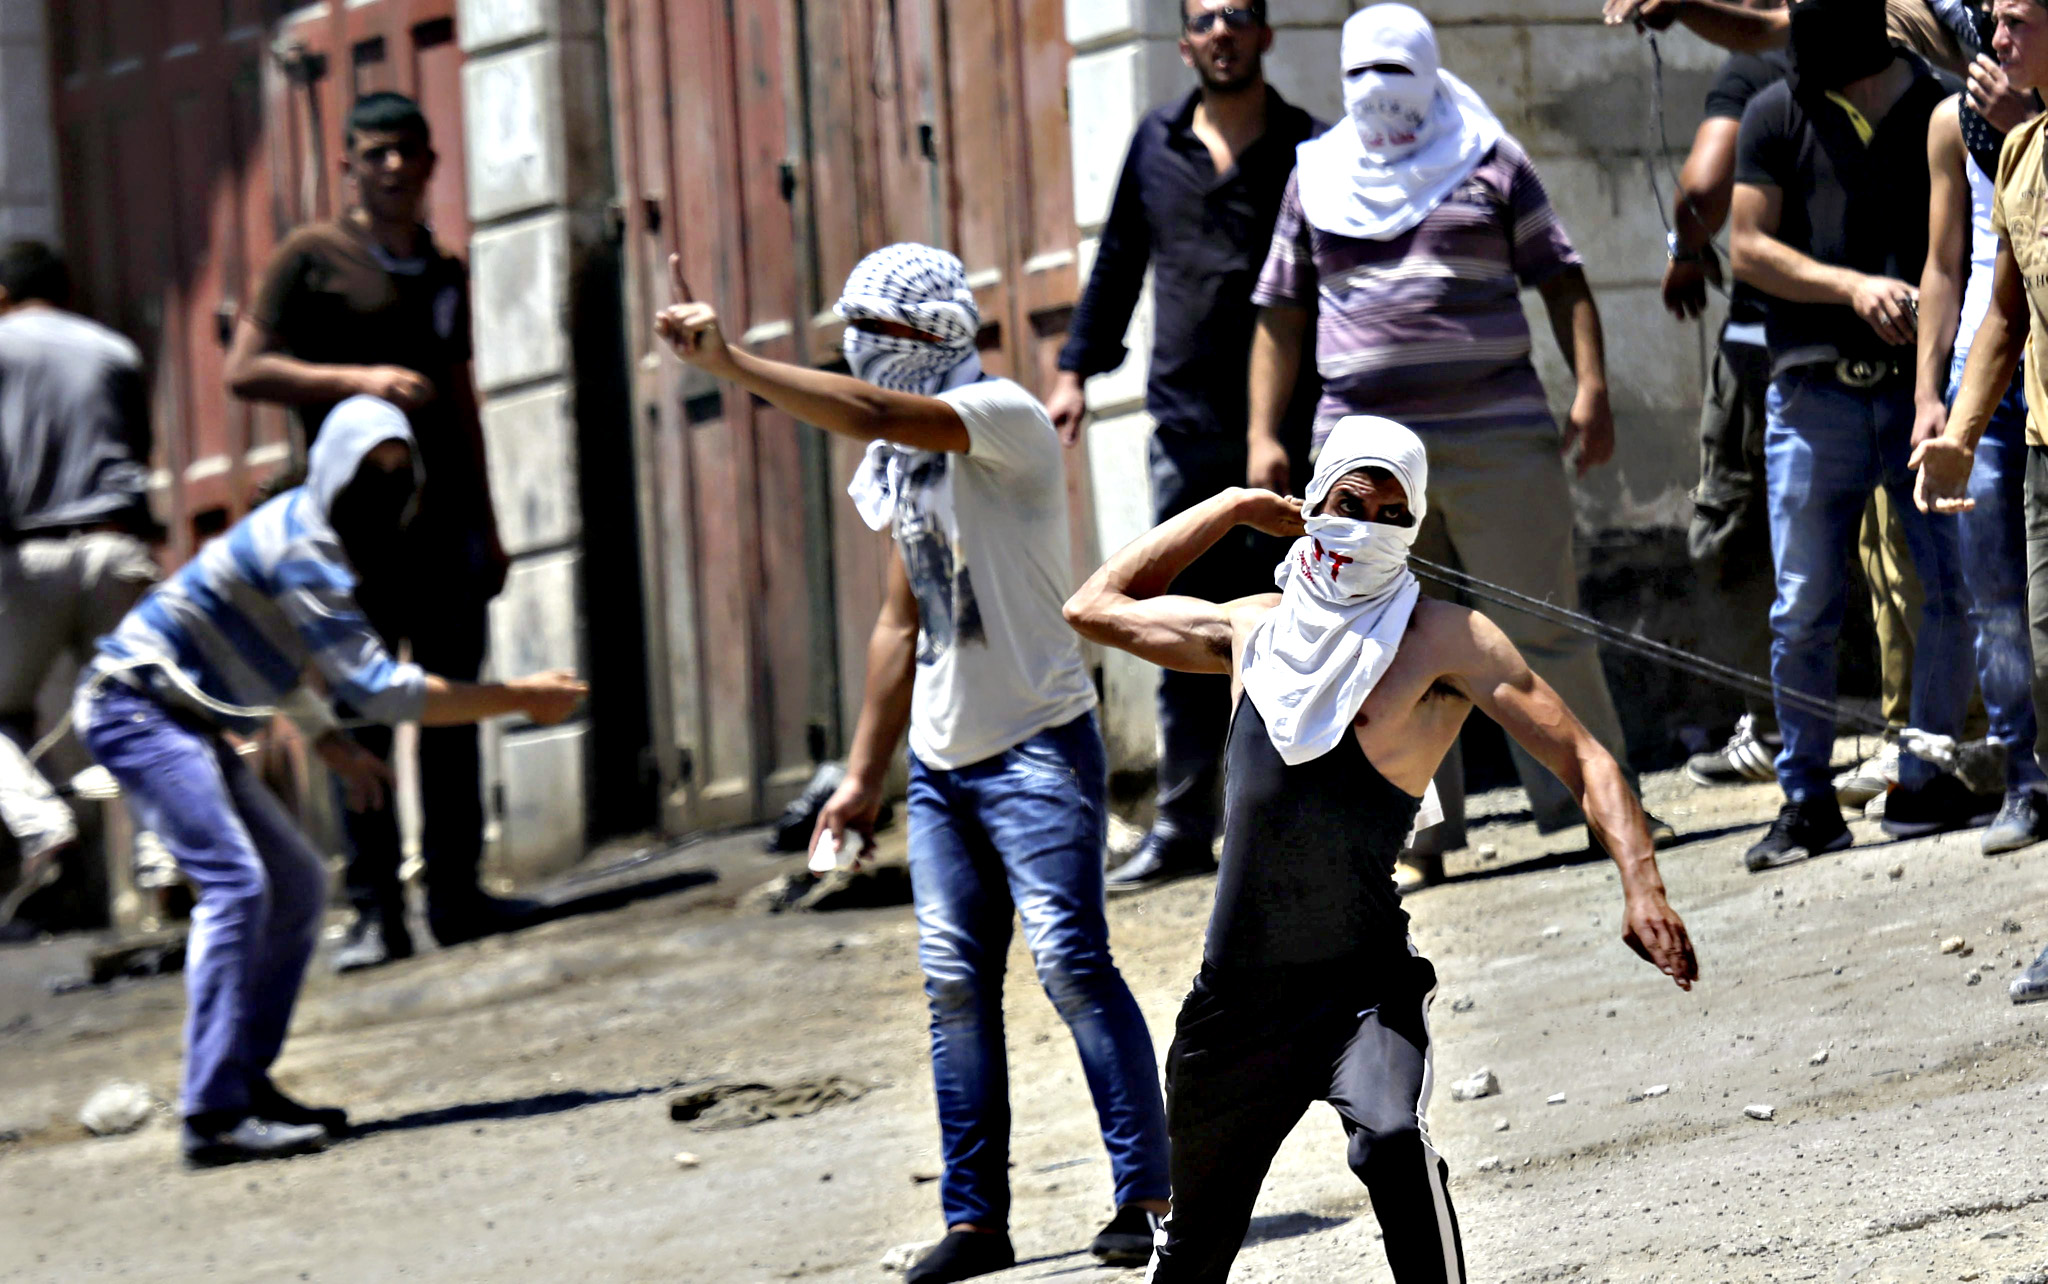 Palestinian protesters from the village of Beit Ummar near Hebron, West Bank, clash with Israeli soldiers in the village on 23 July 2015. Following the funeral of Falah Abu Maria, 53, who was shot dead by  Israeli soldiers during a raid on his home early 23 July 2015 to arrest his son, in the southern West Bank town of Beit Ummar. The man's two sons, both in their 20s, were injured in the raid